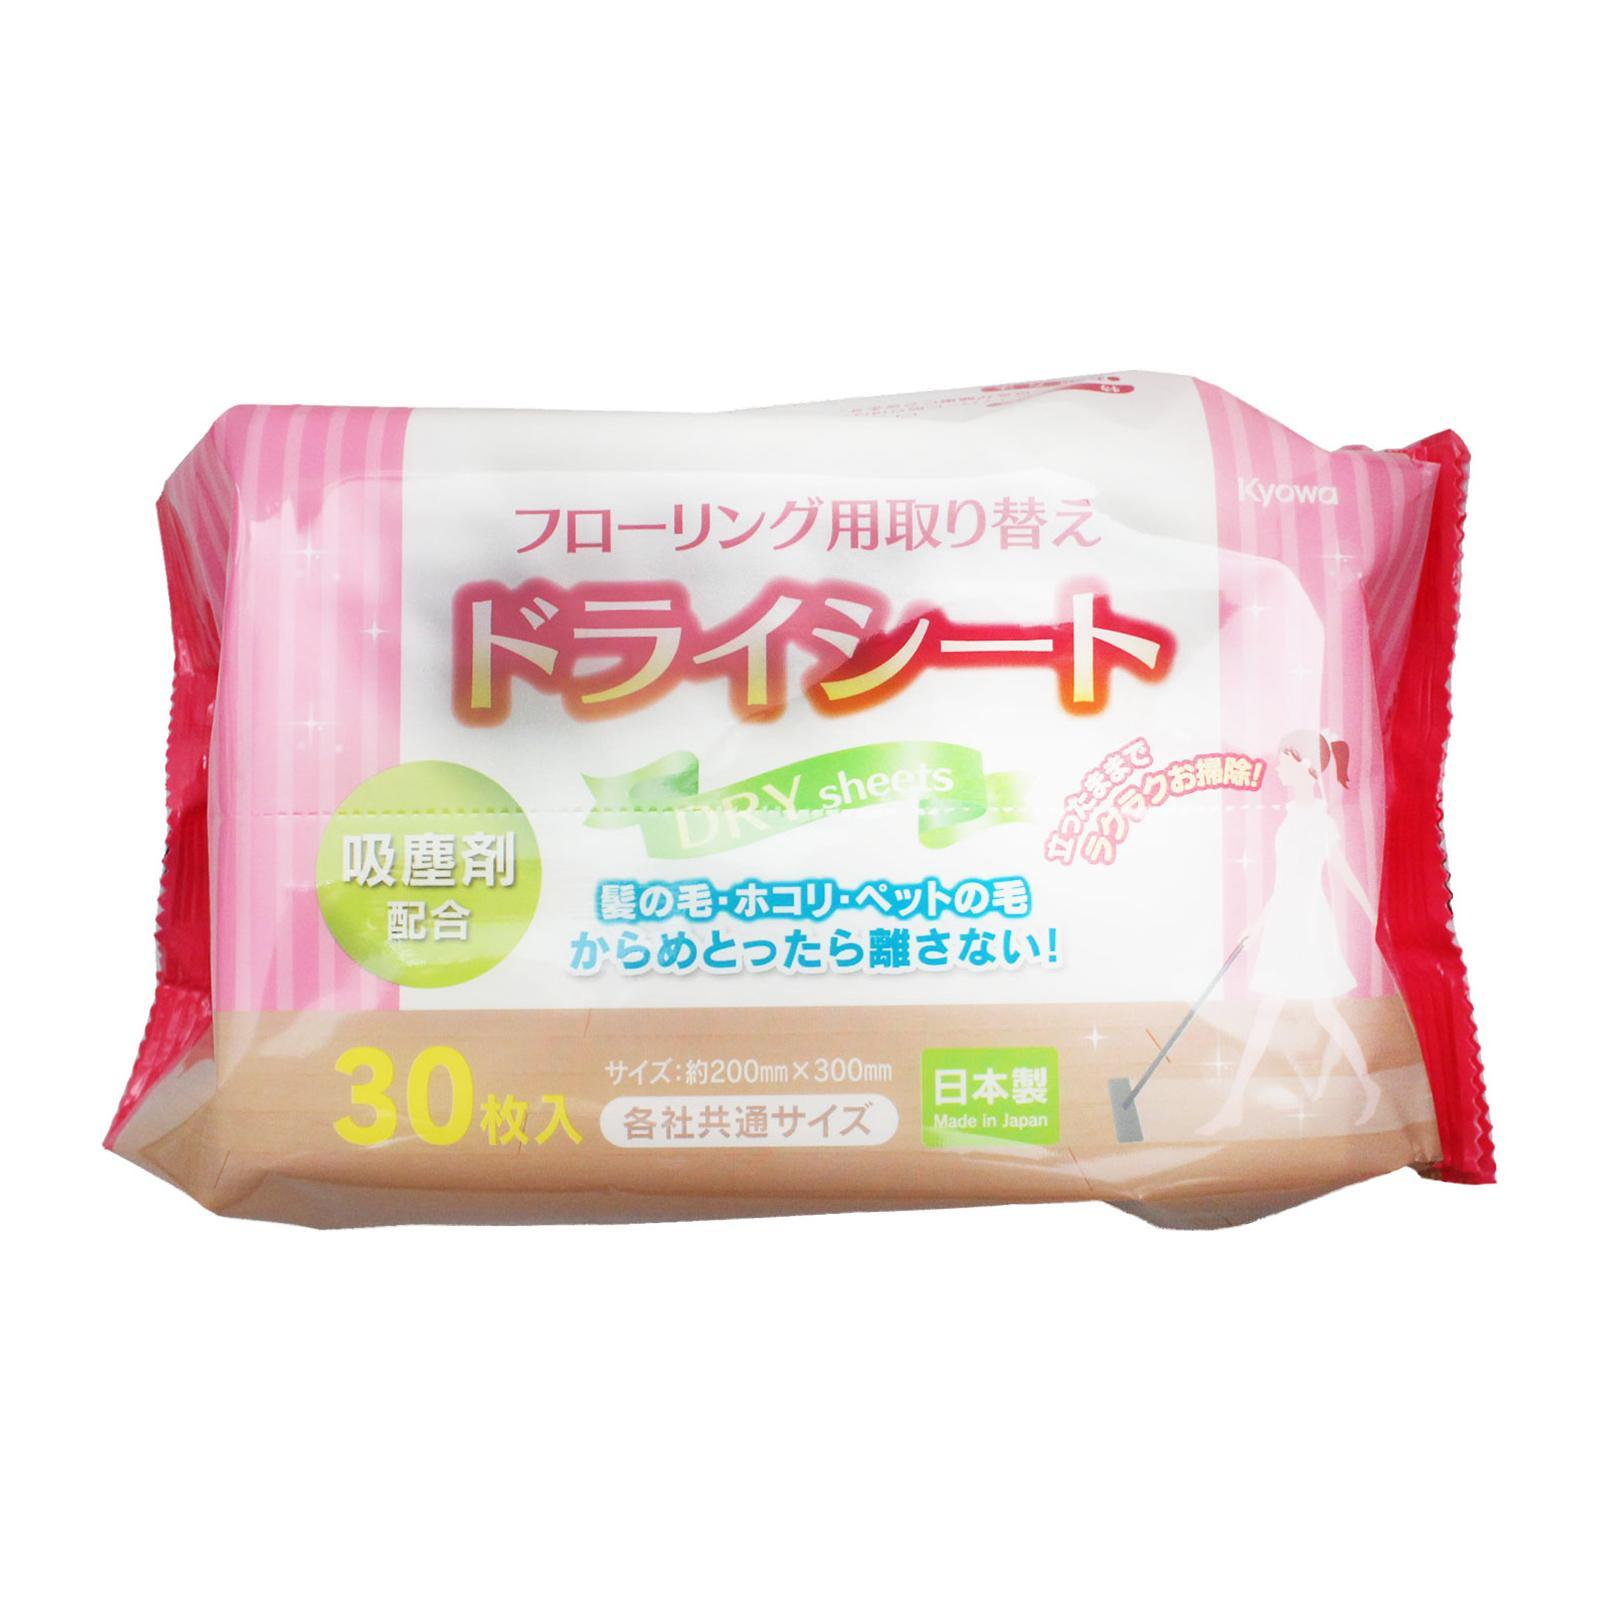 Kyowashiko Disposable Dry Cloths Floor Cleaning Wiper 20Sheets